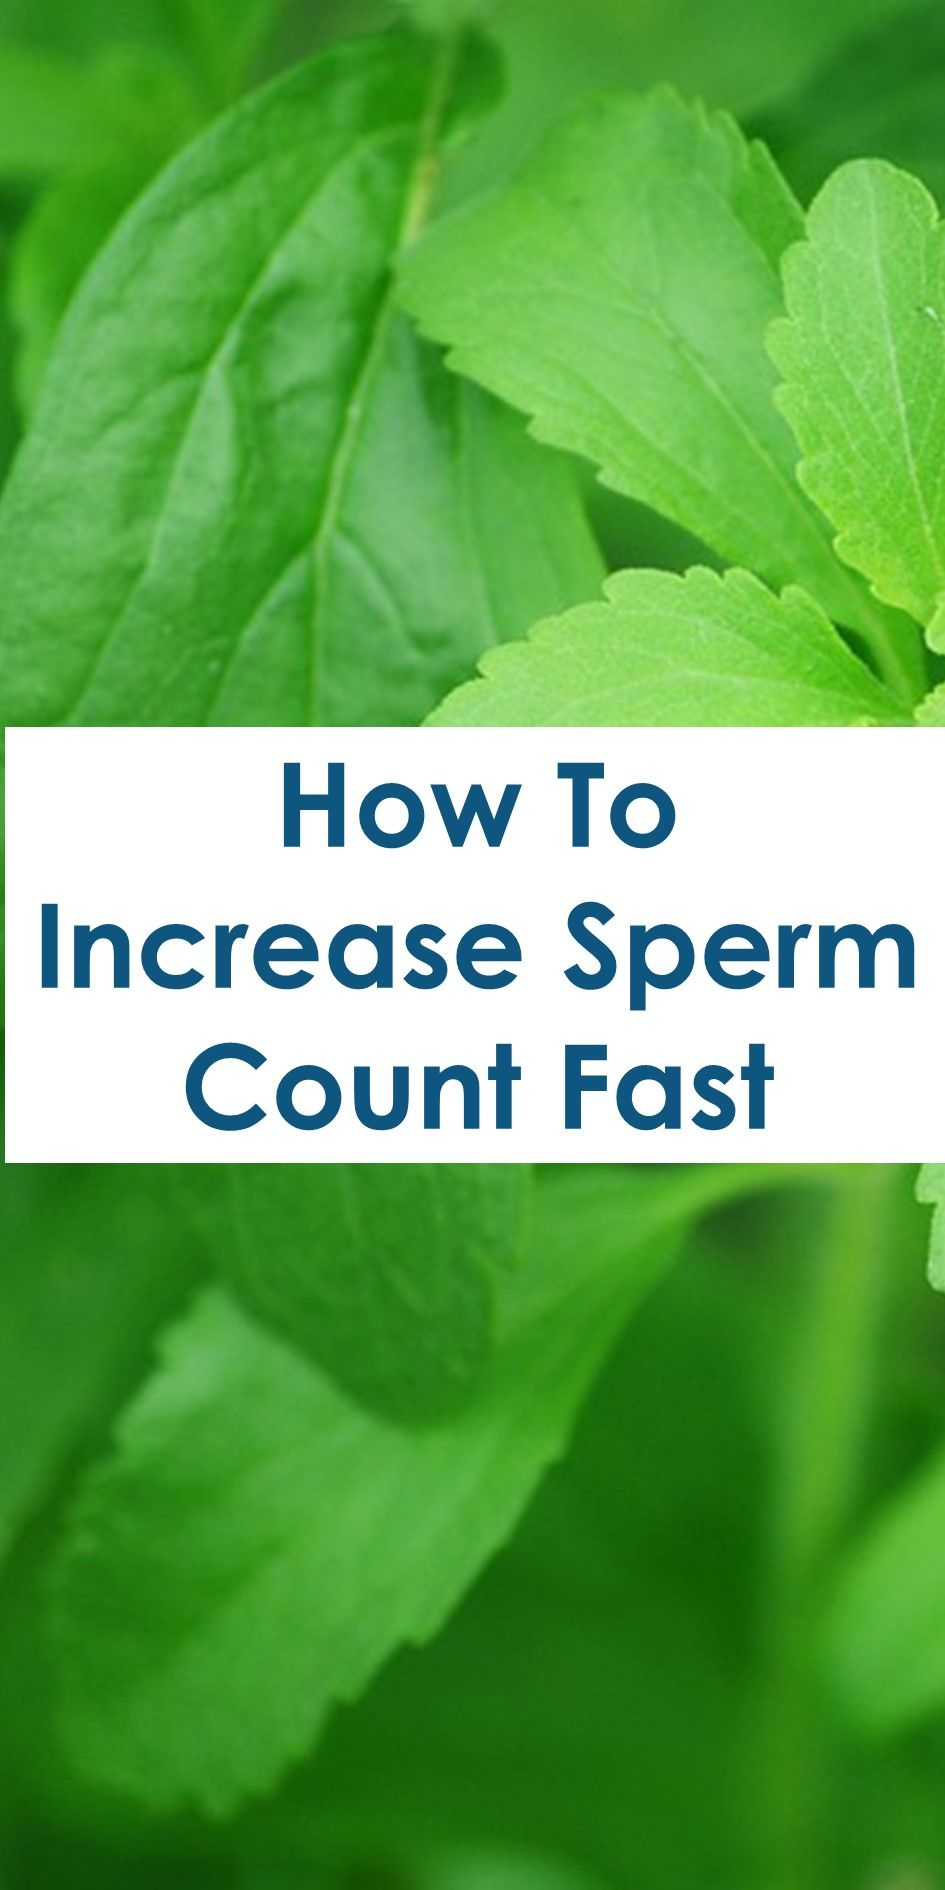 15 Home Remedies To Increase Low Sperm Count | Home Remedies